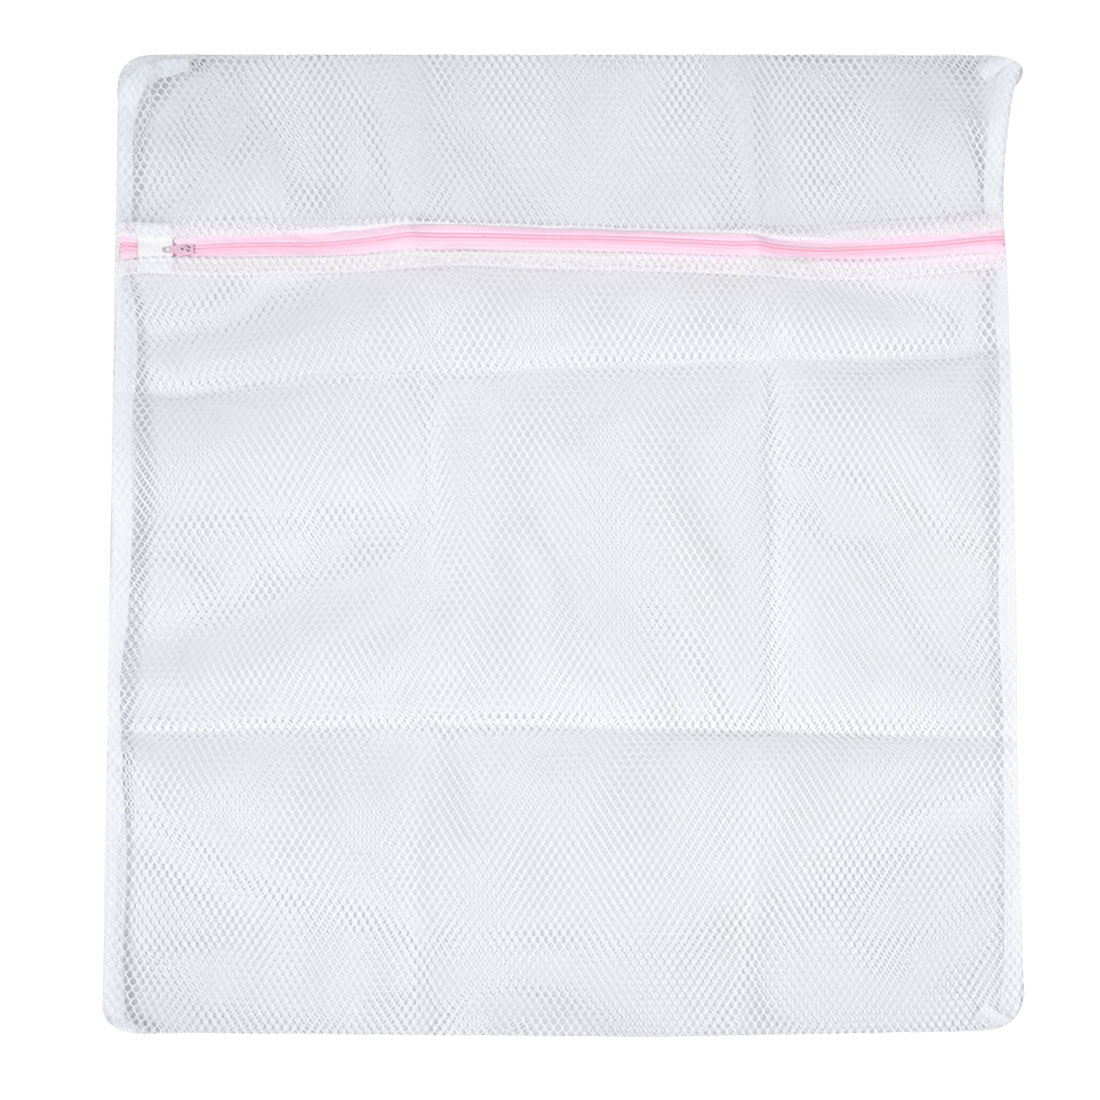 Laundry Zipper Closure White Mesh Underwear Clothes Washing Bag 60cm x 50cm